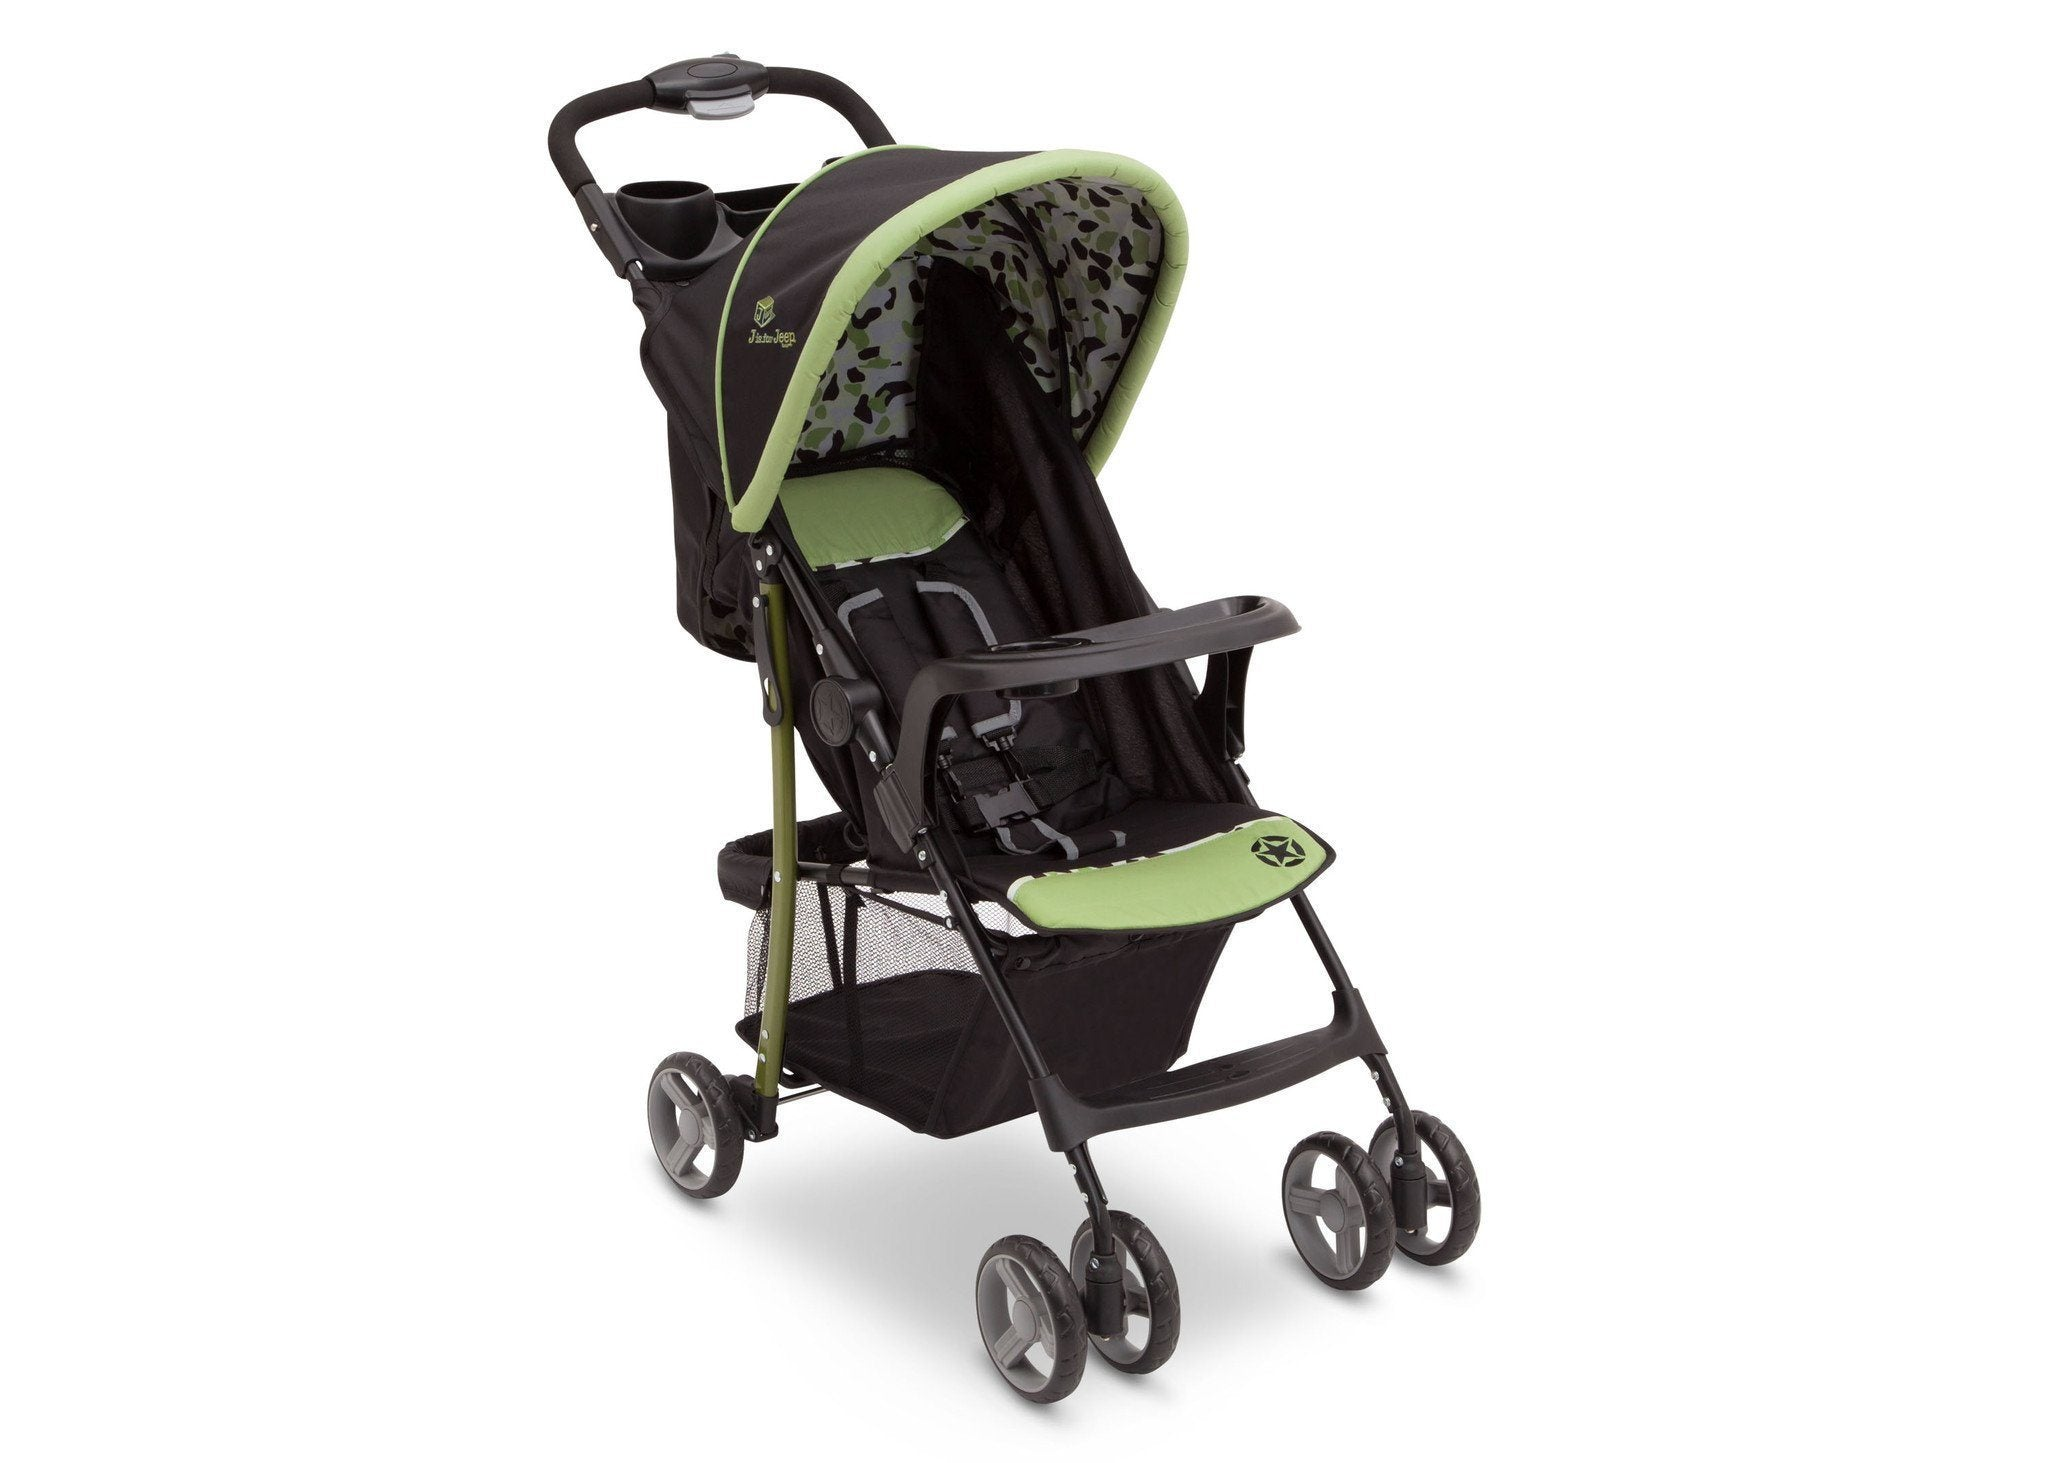 Delta Children Trekking (344) J is for Jeep Brand Metro Stroller Right Side View, with Canopy and Child Tray c1c